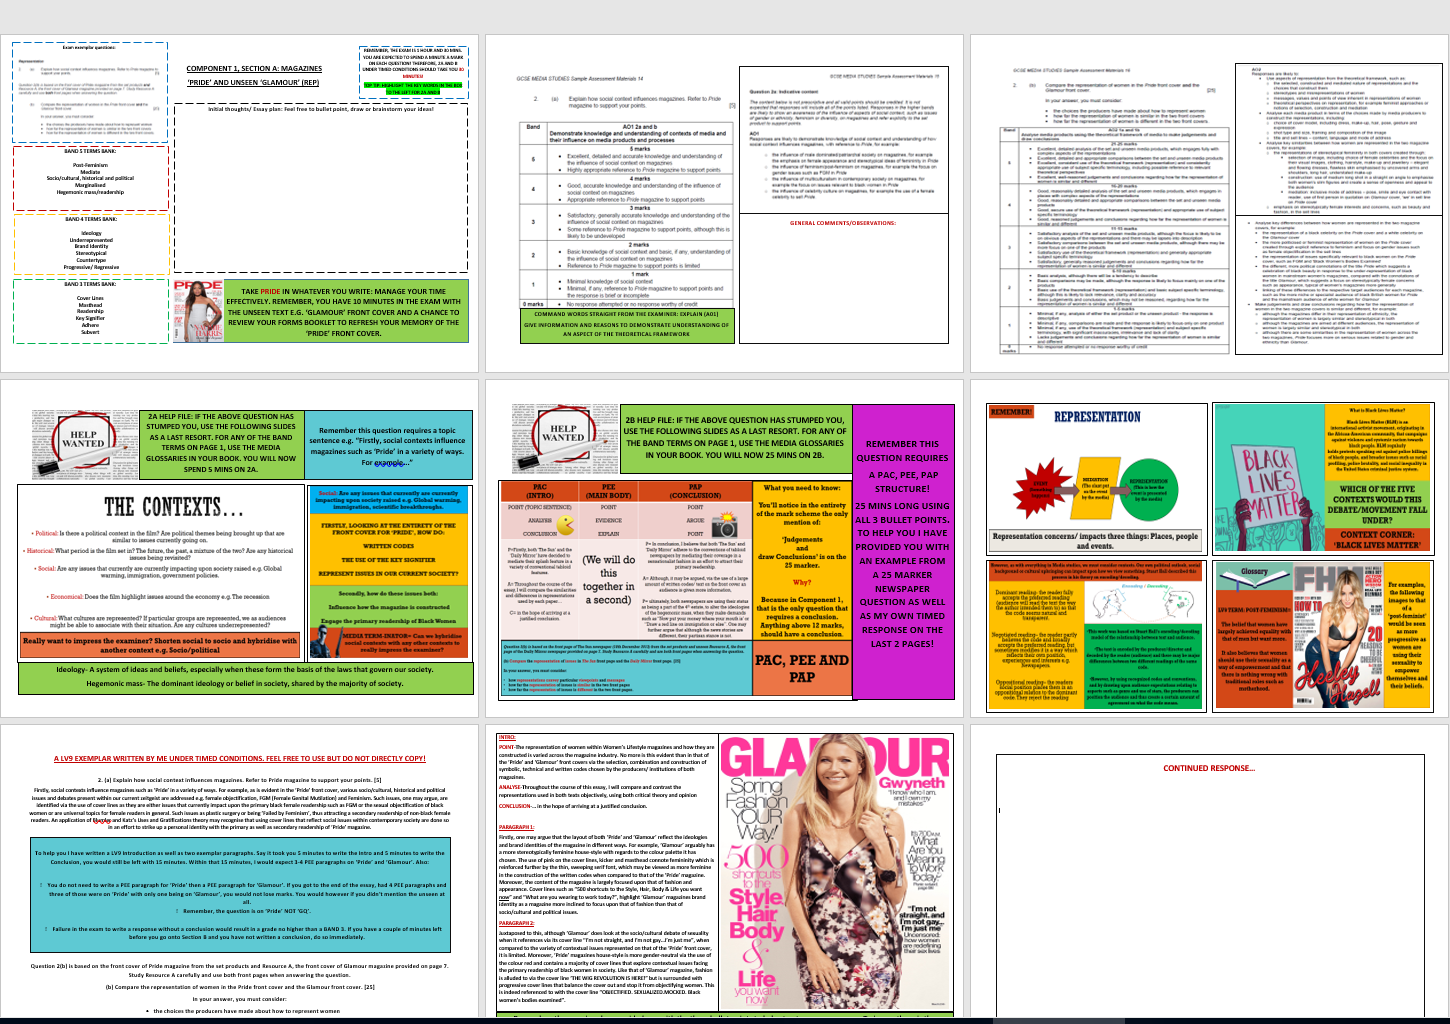 THE COMPLETE GCSE COMPONENT 1 EDUQAS MASTERY SHEET BUNDLE